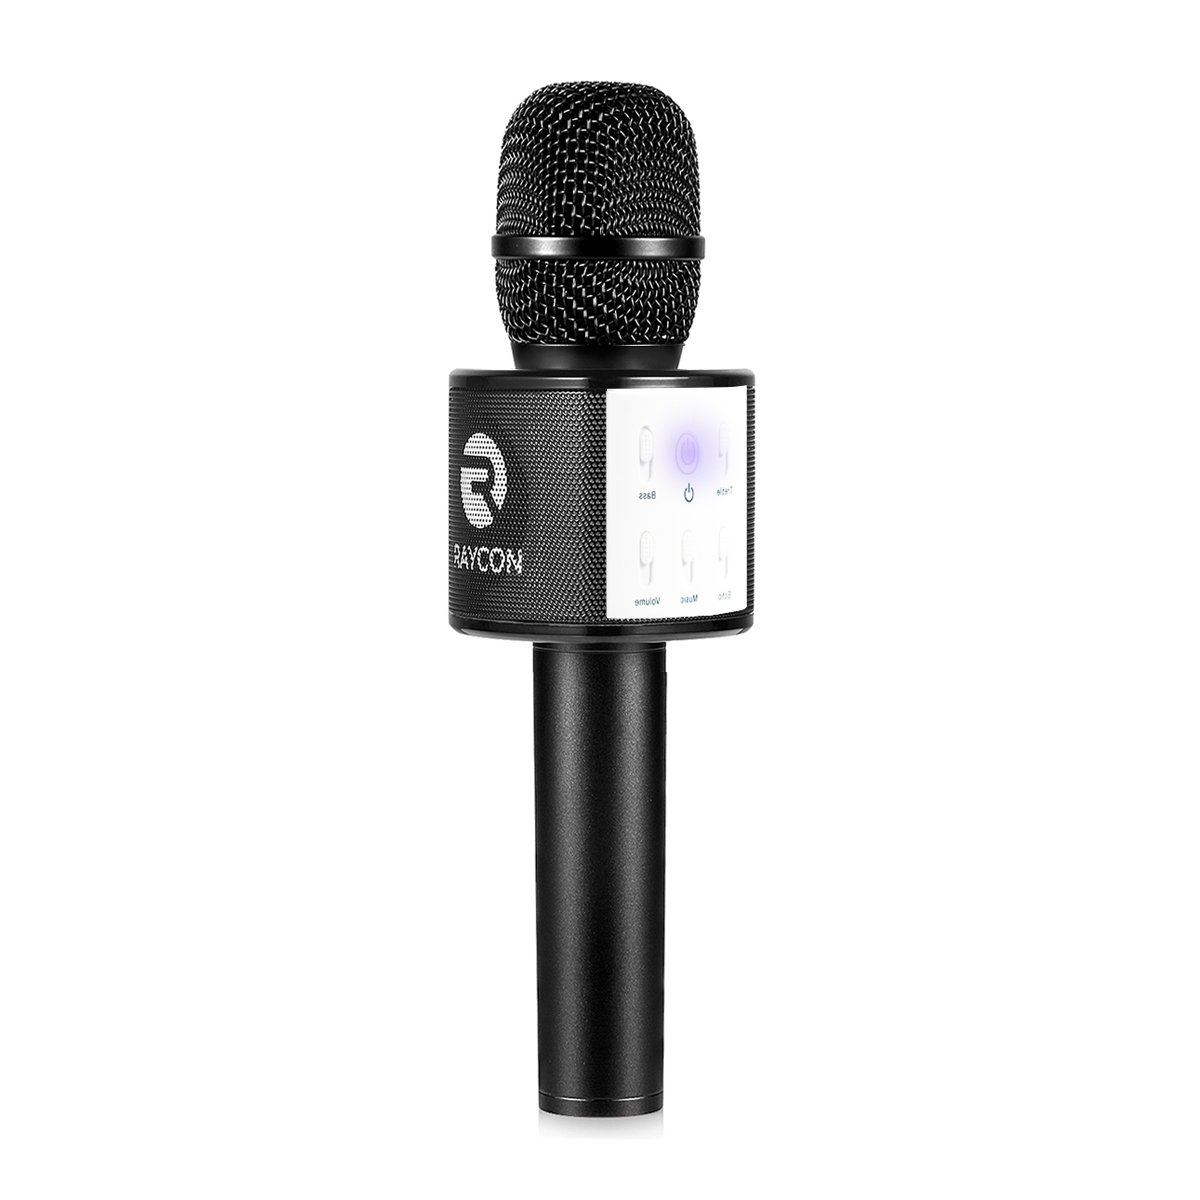 Raycon Supreme Mic M30 Karaoke Microphone Bluetooth 4.1 with Built In Speaker Compatible with Android iPhone and PC - Black